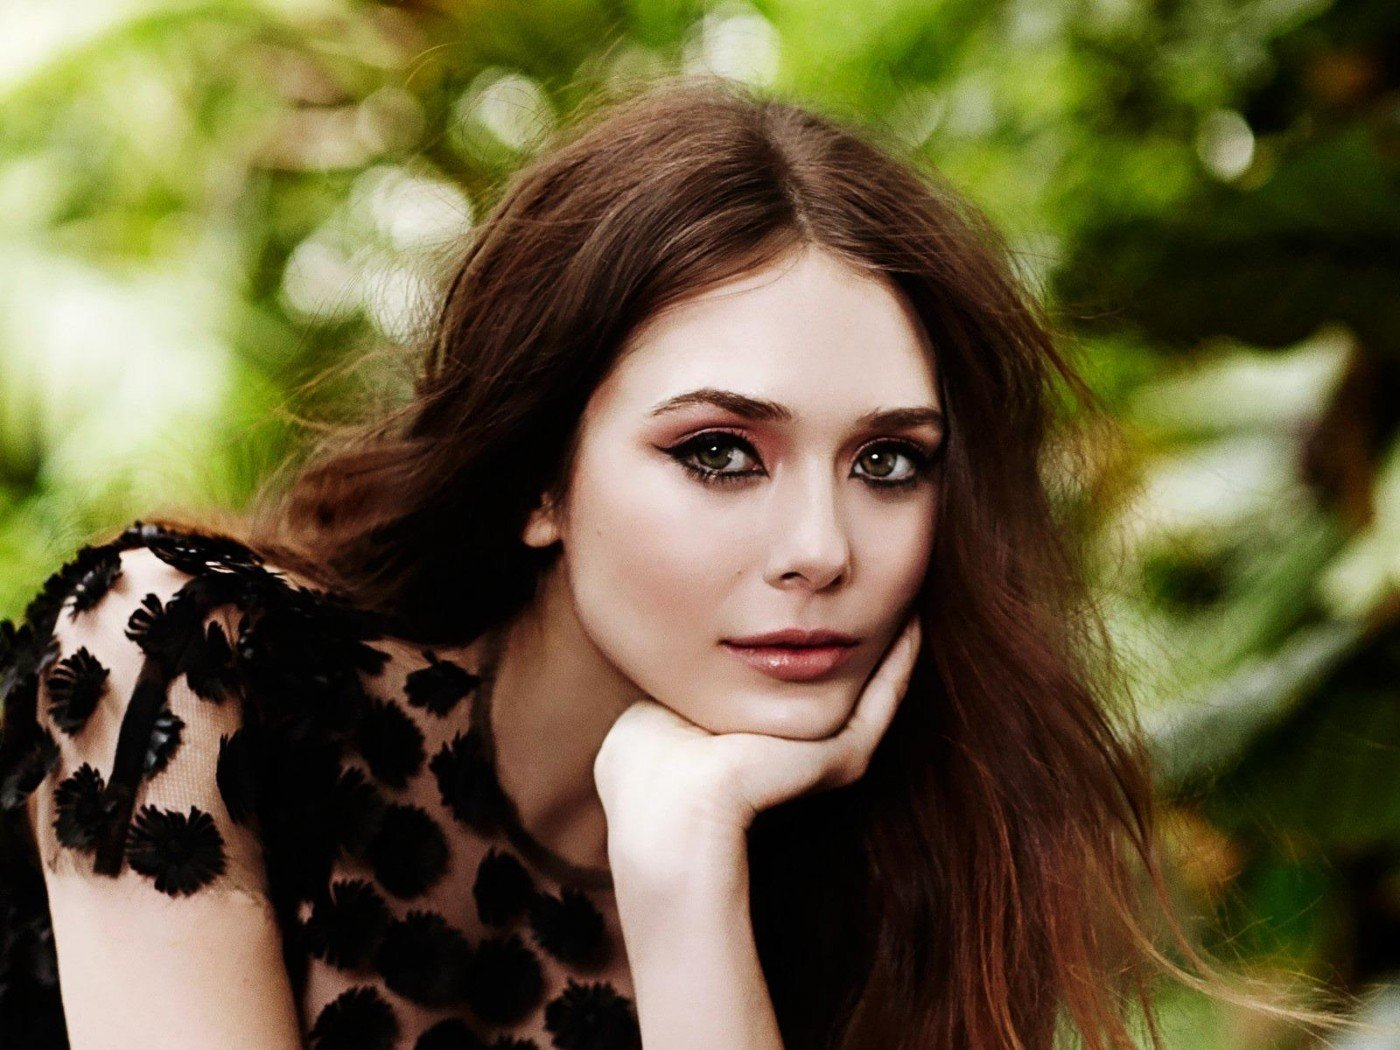 Elizabeth Olsen Cute HD desktop wallpaper Widescreen 1400x1050